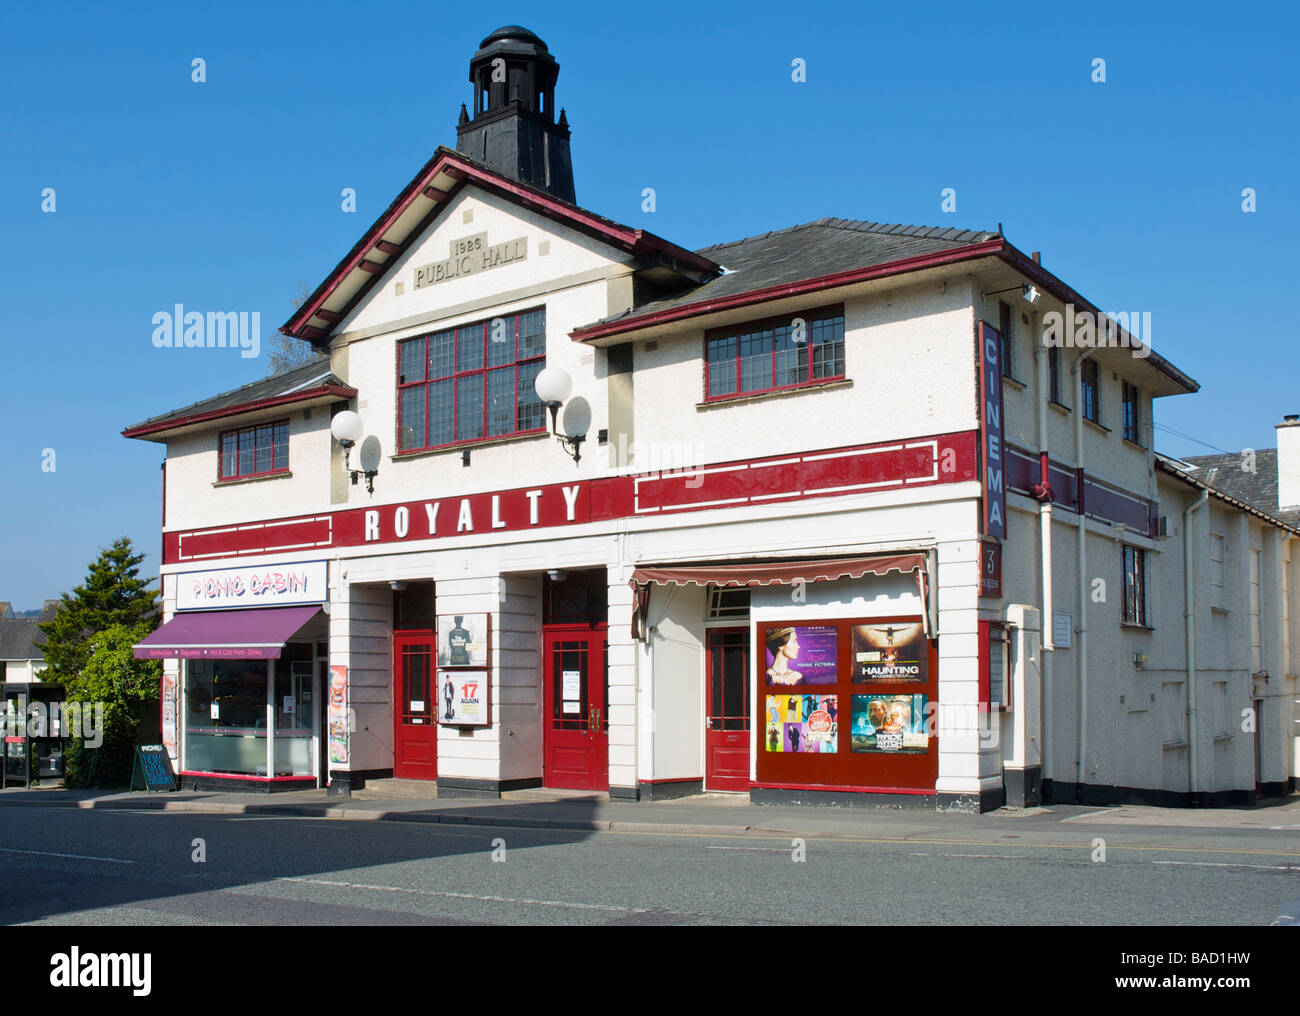 The Royalty Cinema, Bowness-on-Windermere, Lake District National Park, Cumbria, England UK - Stock Image